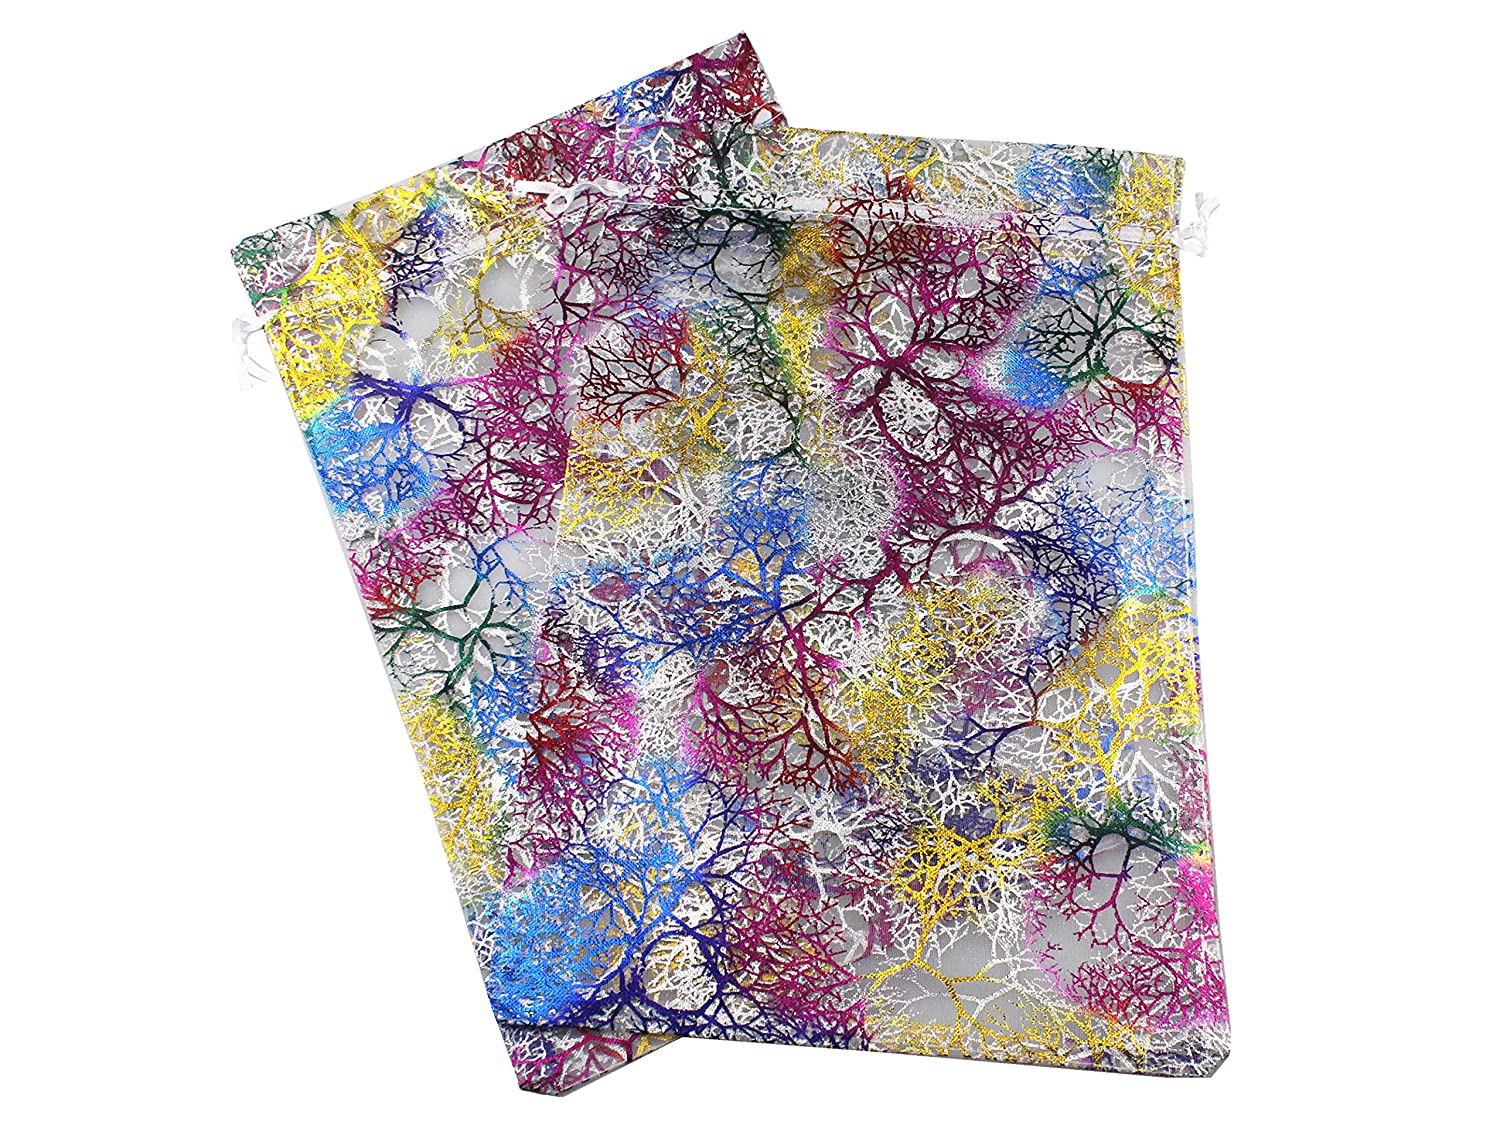 QIANHAILIZZ 8 x 12 Inch 21 Drawstring Colorful Tree Bags Organza Jewelry Gift Pouch Candy Pouch Drawstring Wedding Favor Bags Turquoise